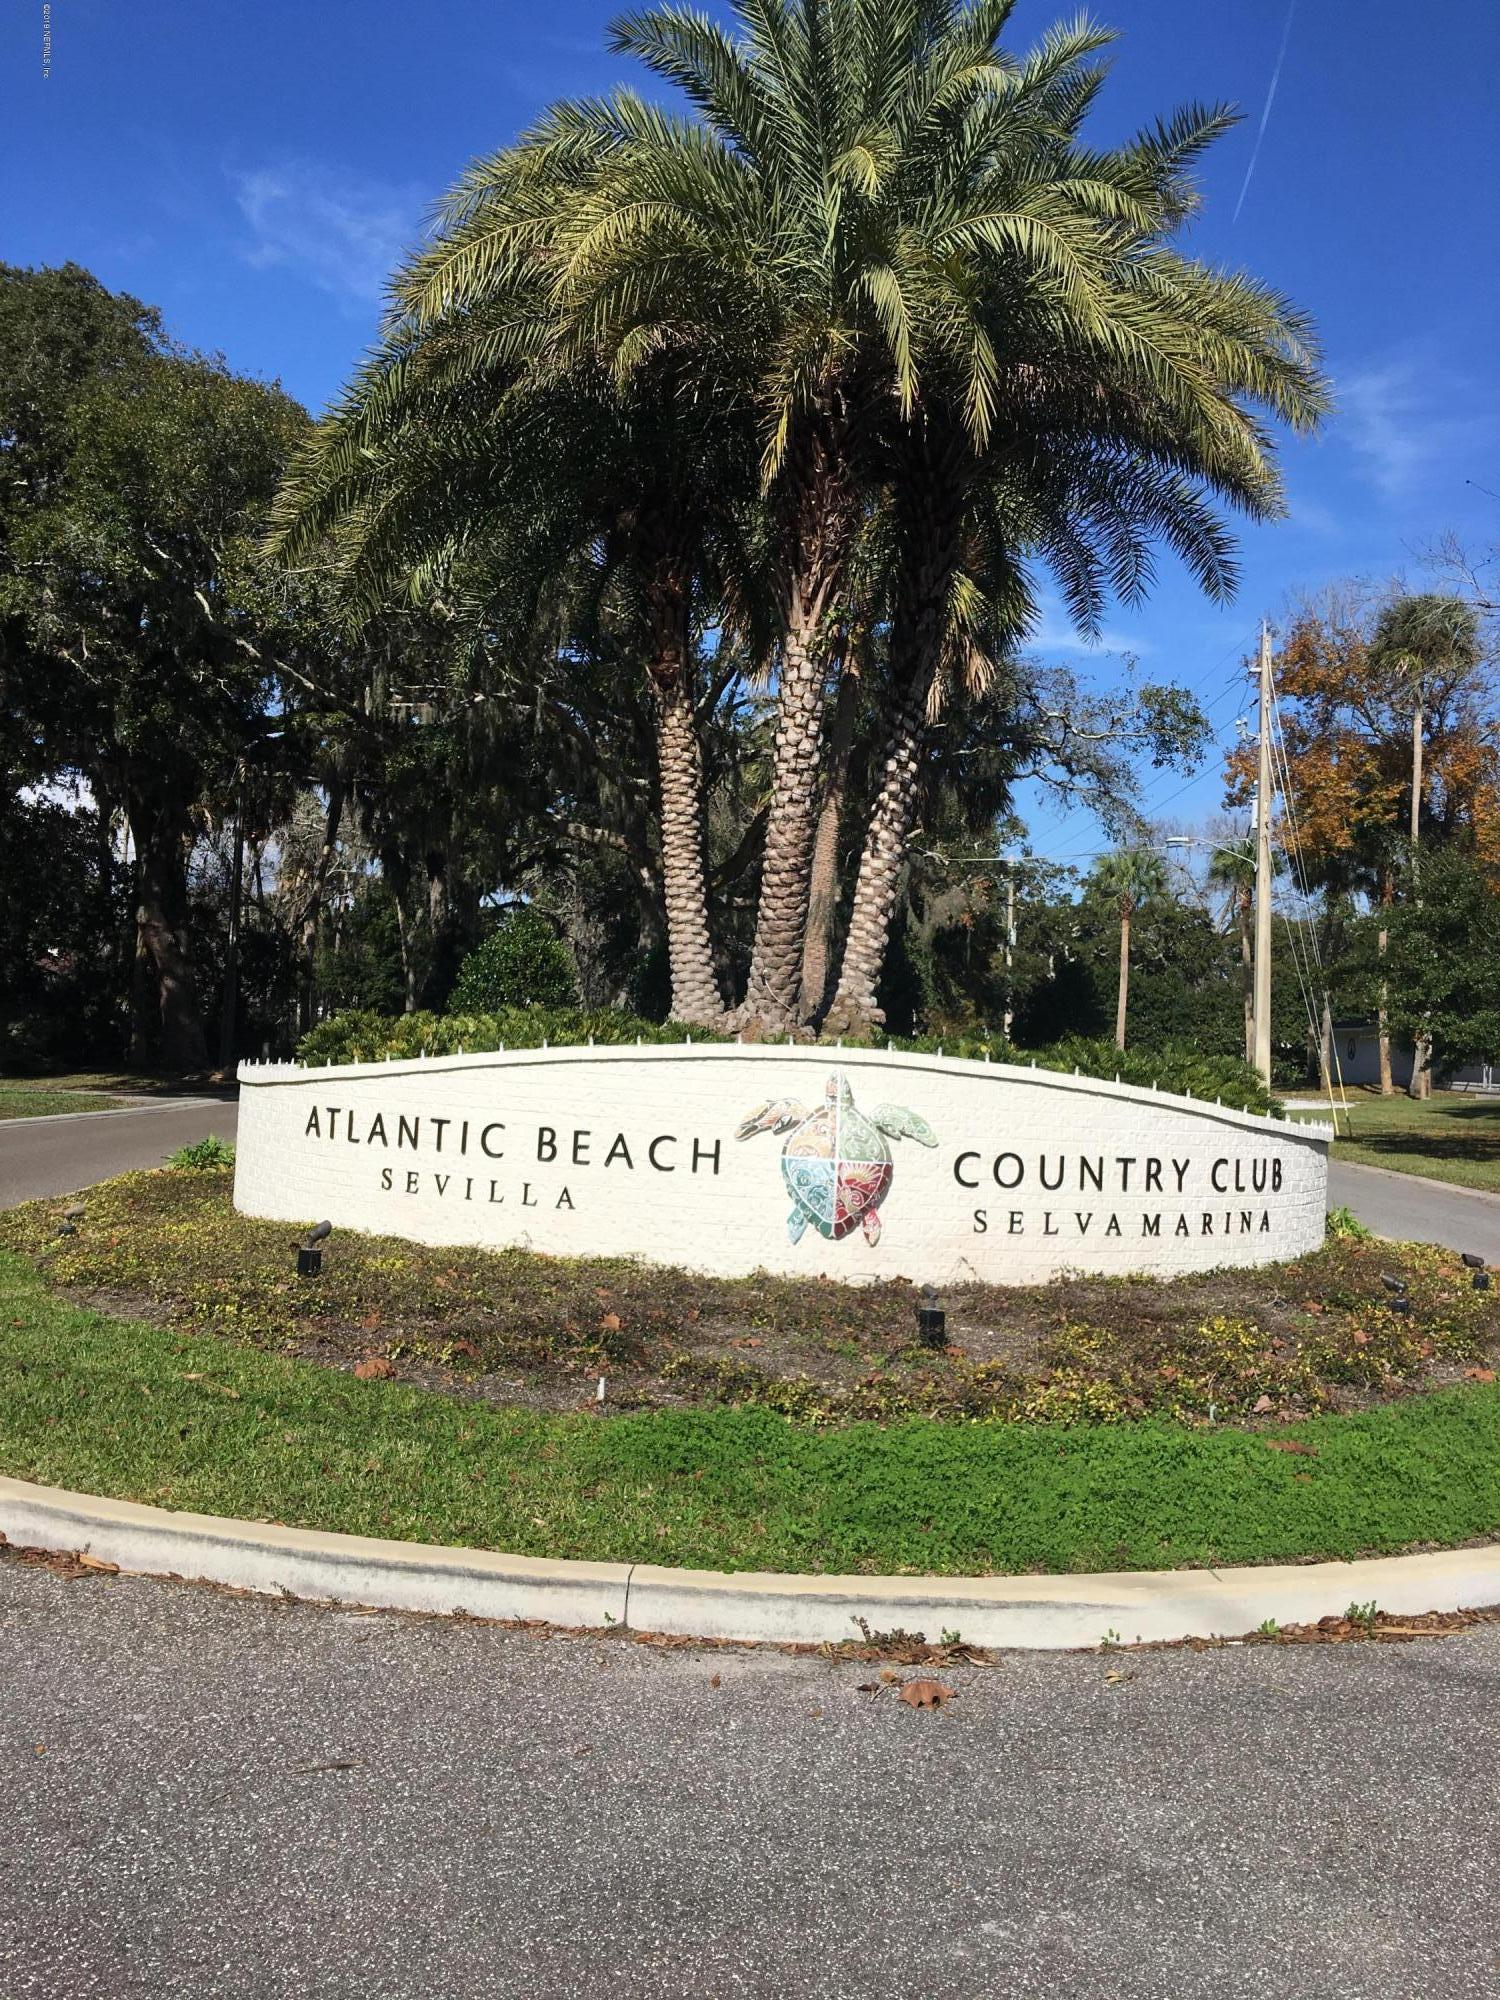 0  ATLANTIC BEACH DR, one of homes for sale in Atlantic Beach